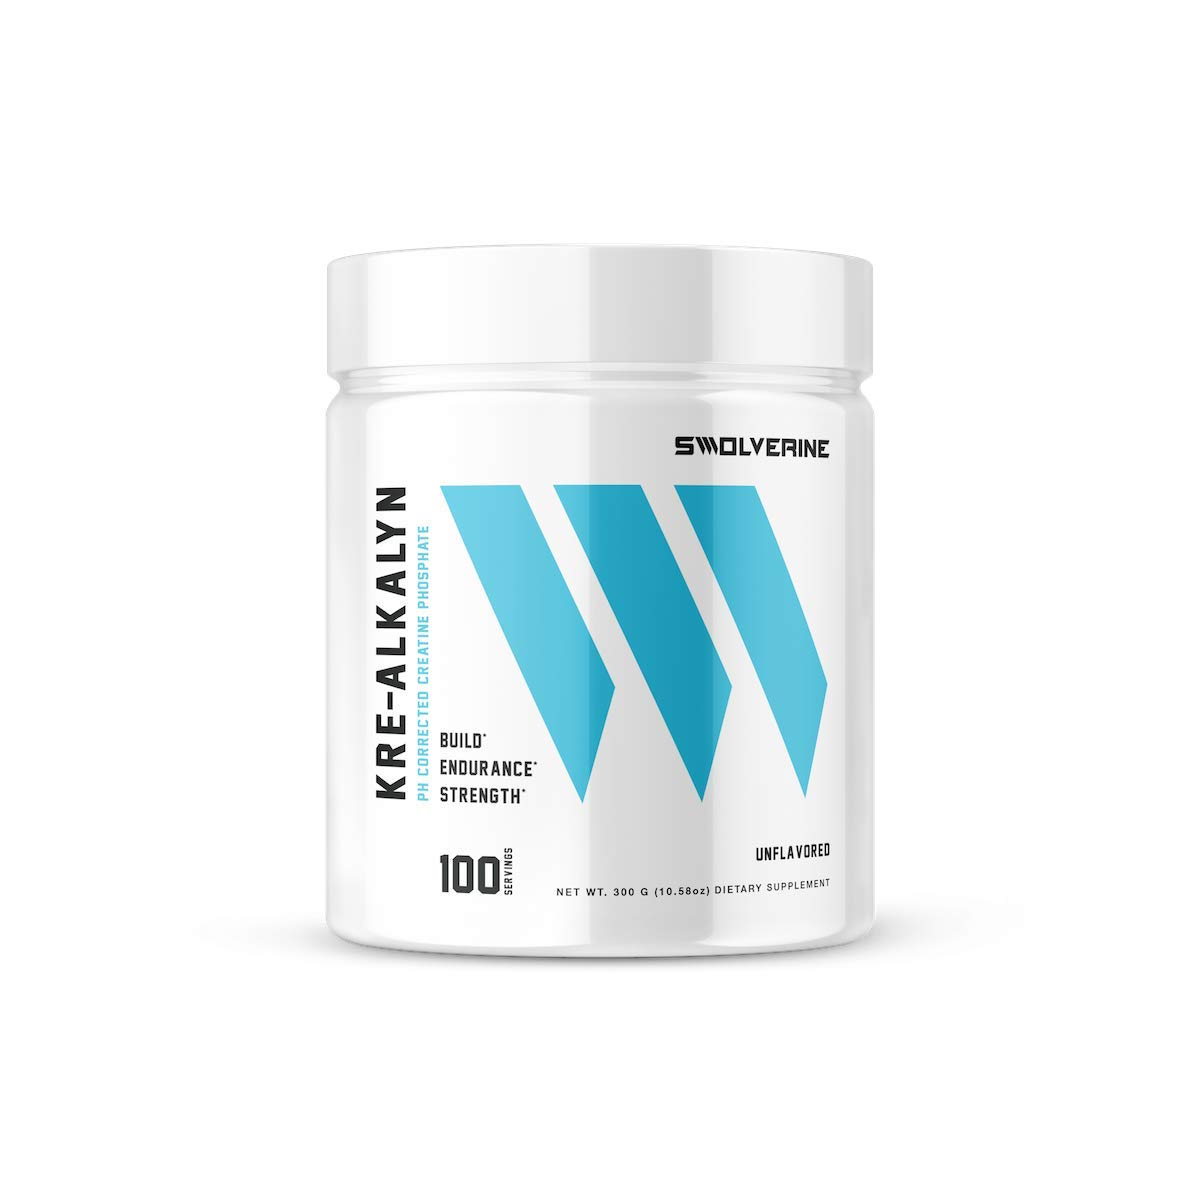 Kre-Alkalyn | pH Correct Creatine Monohydrate, Build Strength, Gain Muscle, Power Performance, Enhance Endurance, Unflavored, (100 Servings) by Swolverine